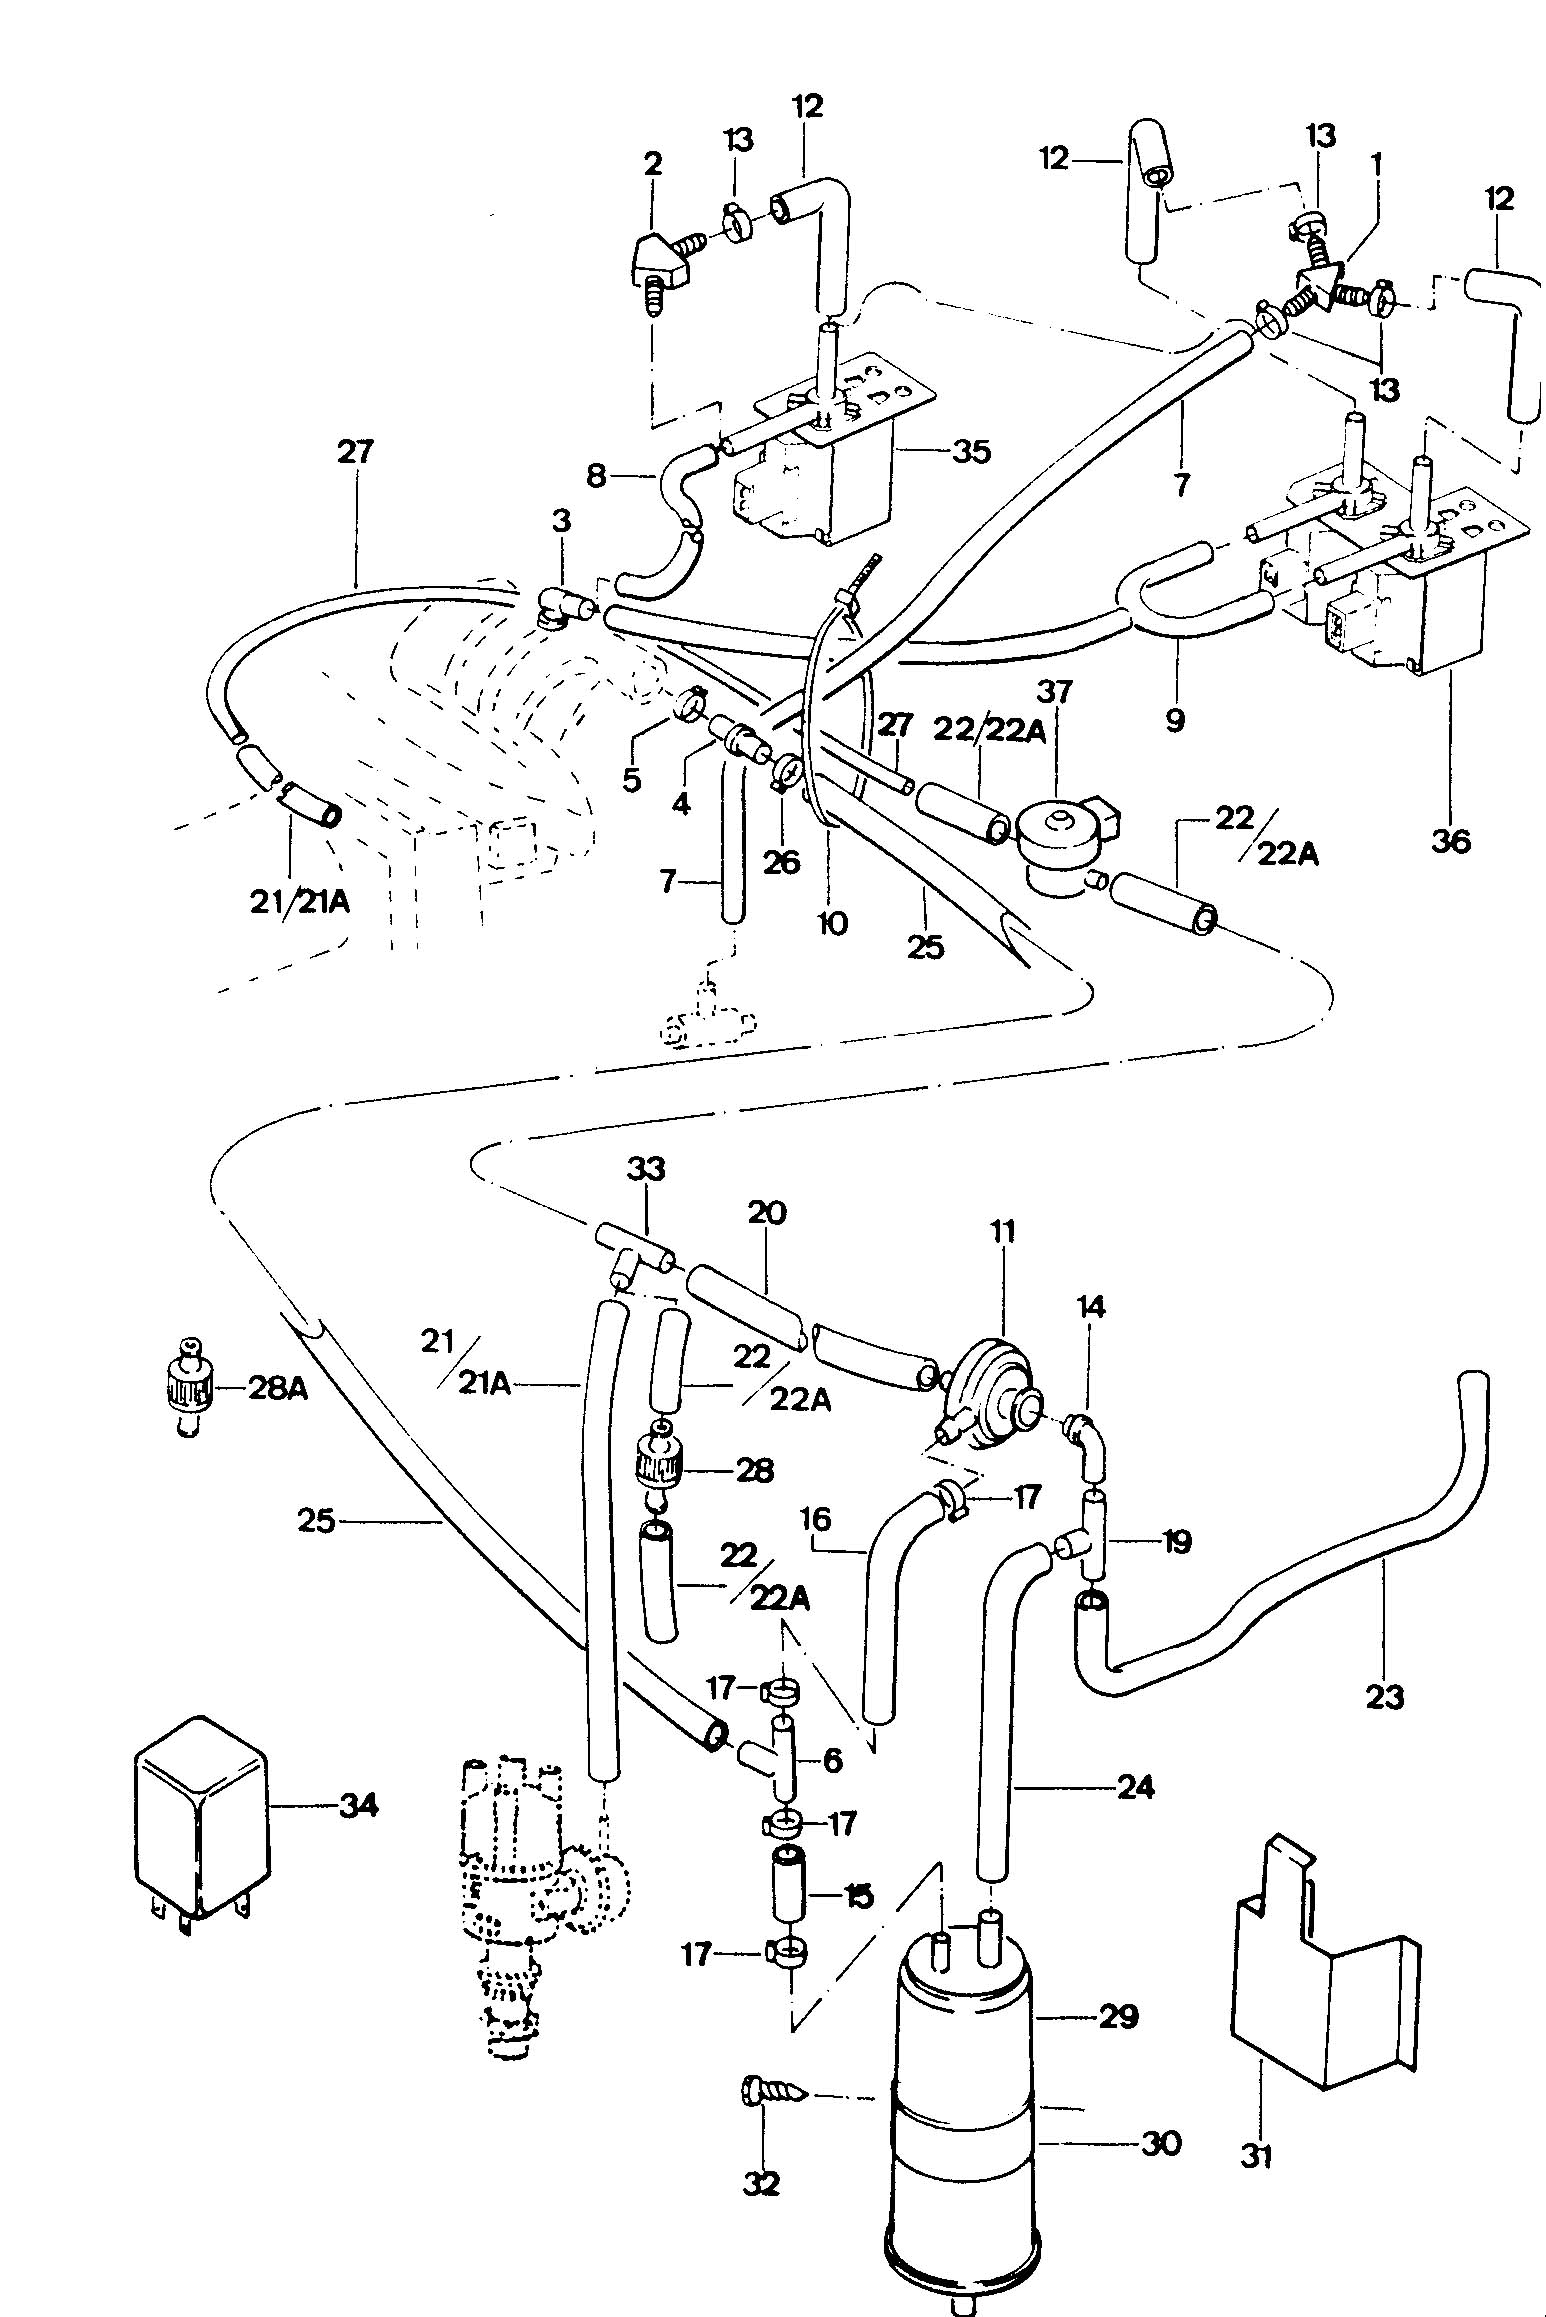 Basic Sensors Diagnostics furthermore T10368297 Belt routing diagram 2003 in addition Newbie Crank No Start 32173 furthermore Vw Jetta 2 0 Engine Diagram together with 2003 Vw Jetta 2 0 Thermostat Location. on vw tdi timing belt diagram